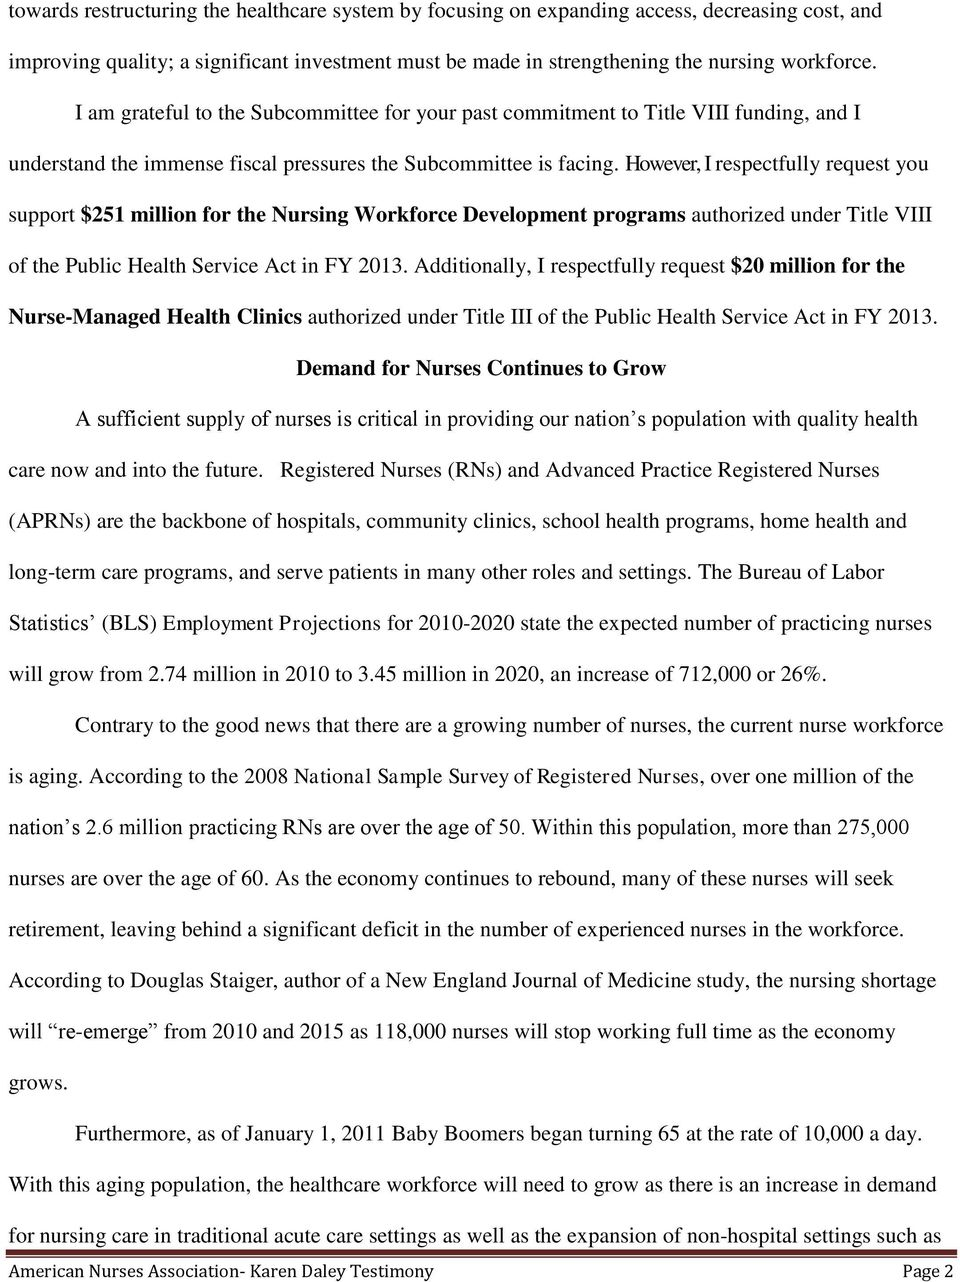 However, I respectfully request you support $251 million for the Nursing Workforce Development programs authorized under Title VIII of the Public Health Service Act in FY 2013.